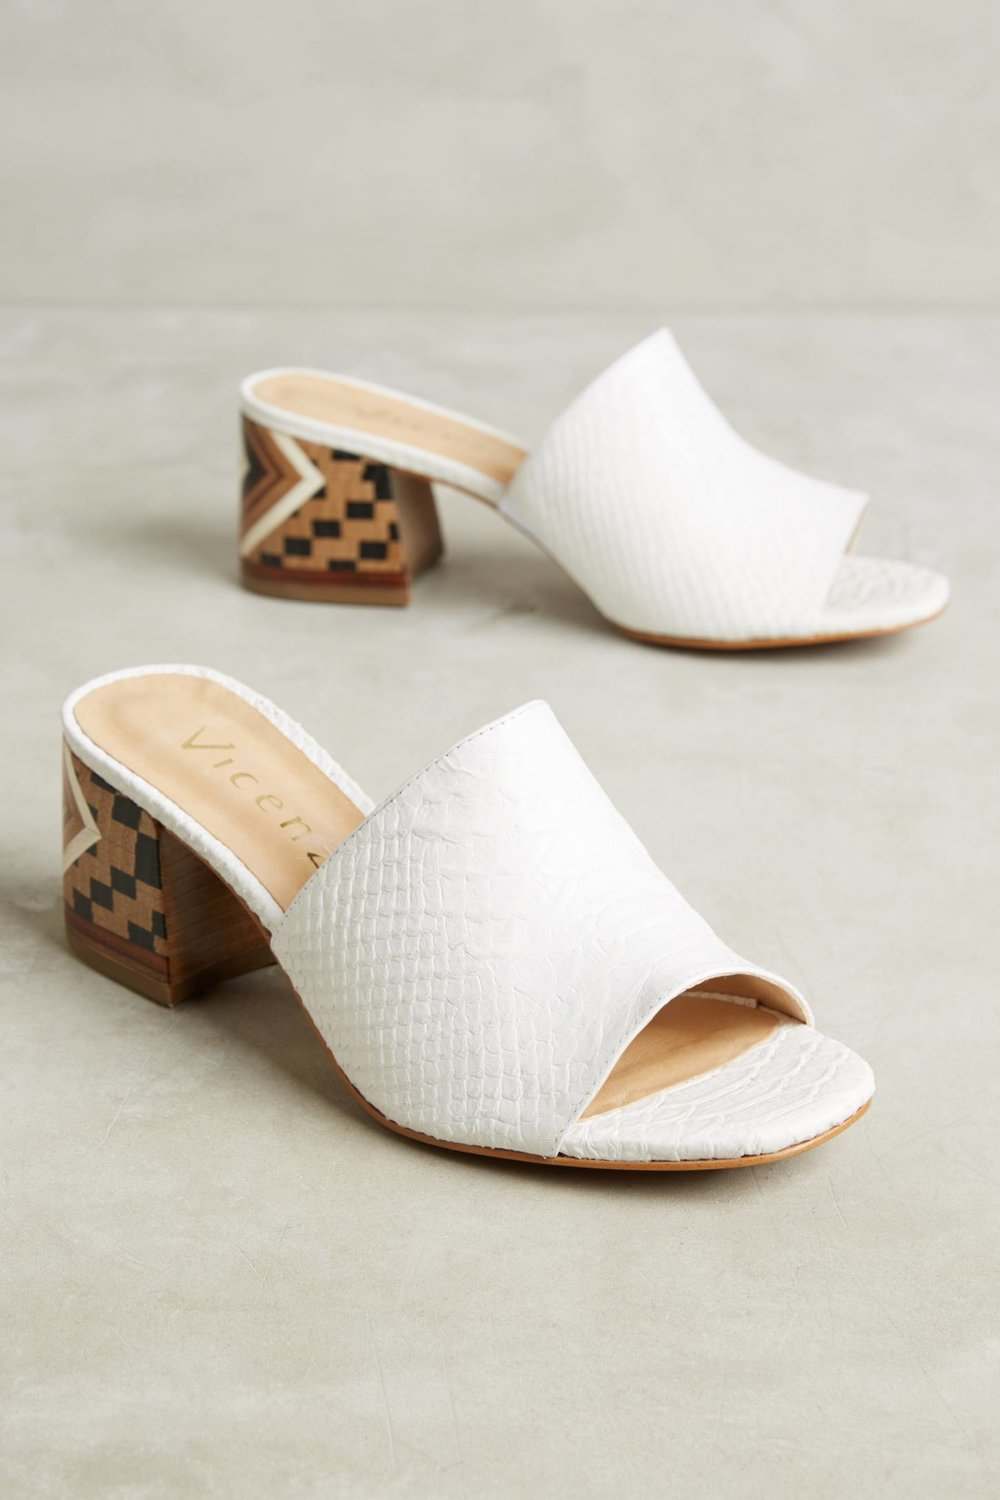 Vicenza Embossed Leather Mule Sandals / Anthropologie / $138  The detail on the heels paired with the white are hot as hell